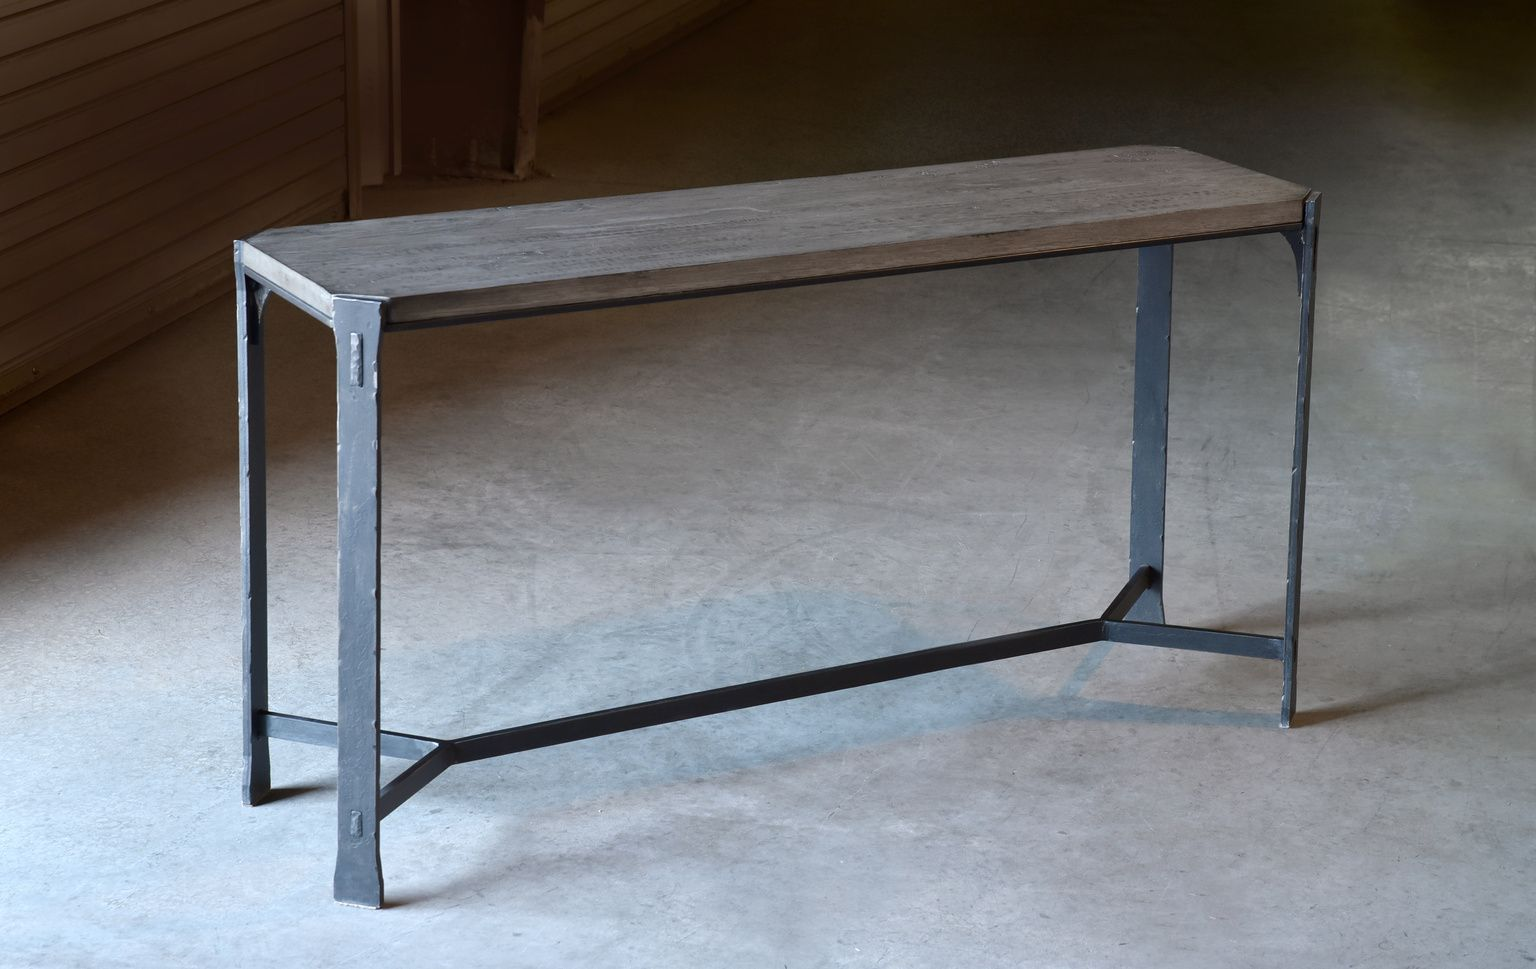 Console Tables By Charleston Forge Made In Usa Quality Furniture Hand Forged Madeinusa Americanmade Interiordesign